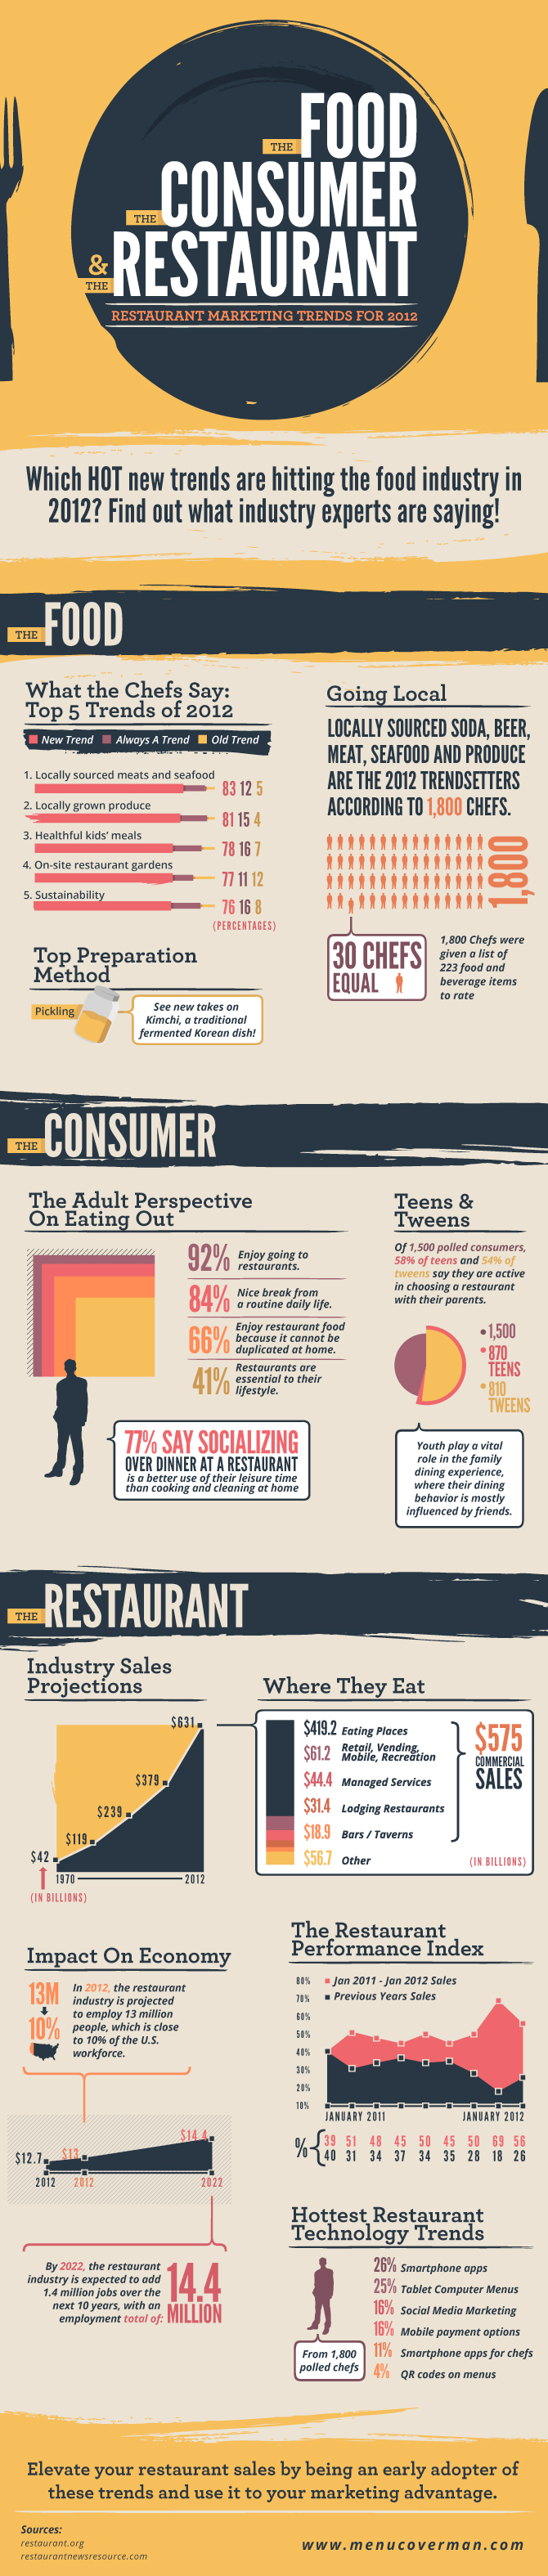 2012 Restaurant Marketing Trends by MenuCoverMan.com